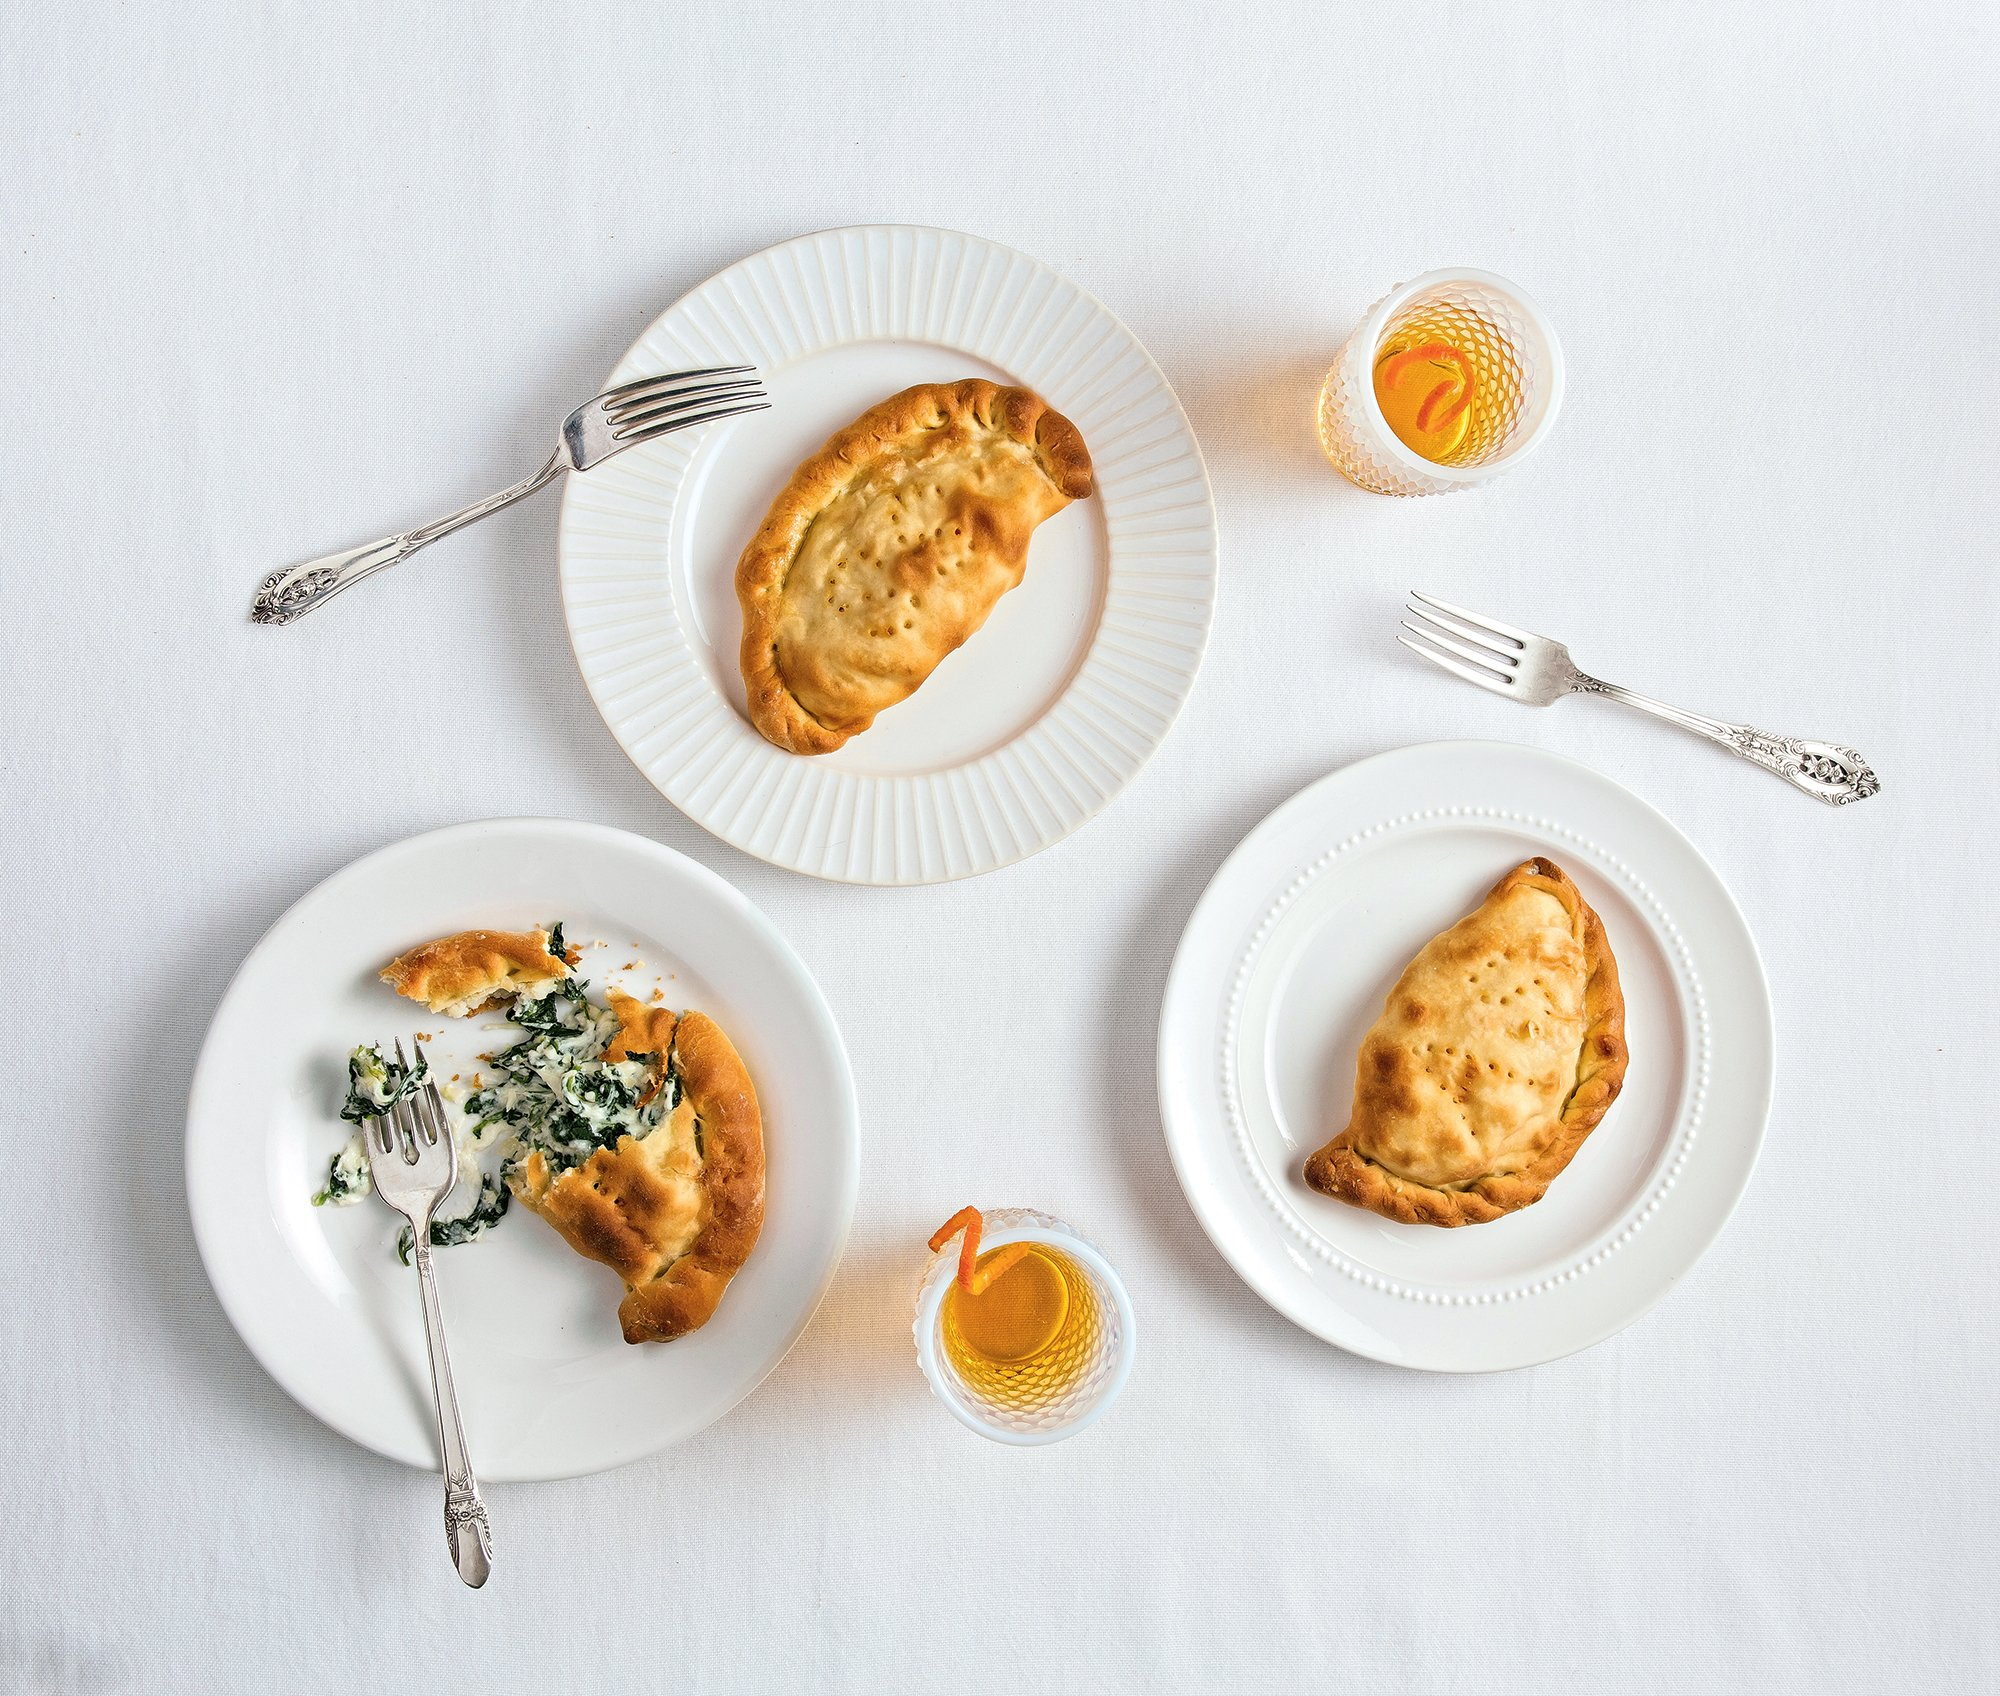 Photograph by Scott Suchman. Food and prop styling by Lisa Cherkasky; flatware courtesy of Something Vintage Rentals.